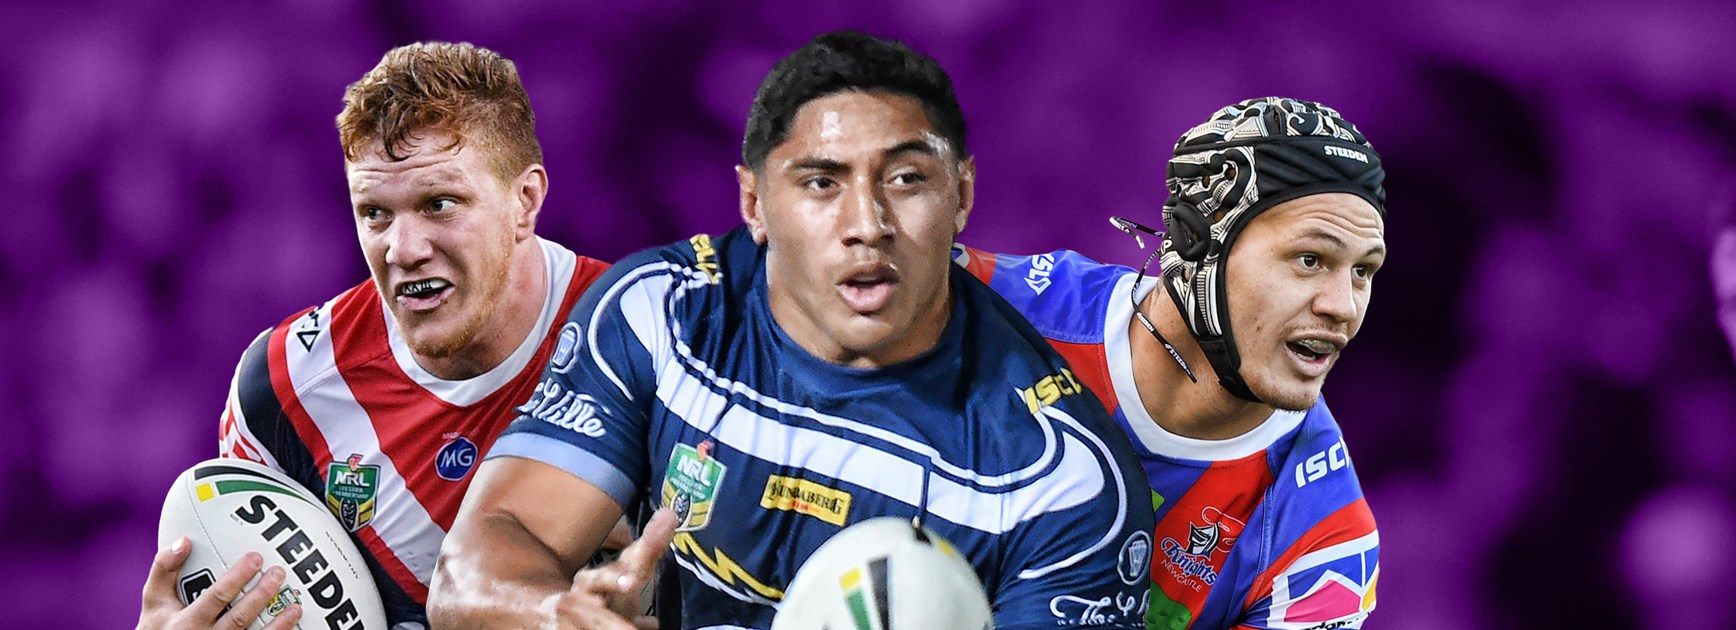 NRL.com Players' Poll: Part 3 - Rule changes, best young player, hardest to tackle, biggest hitter